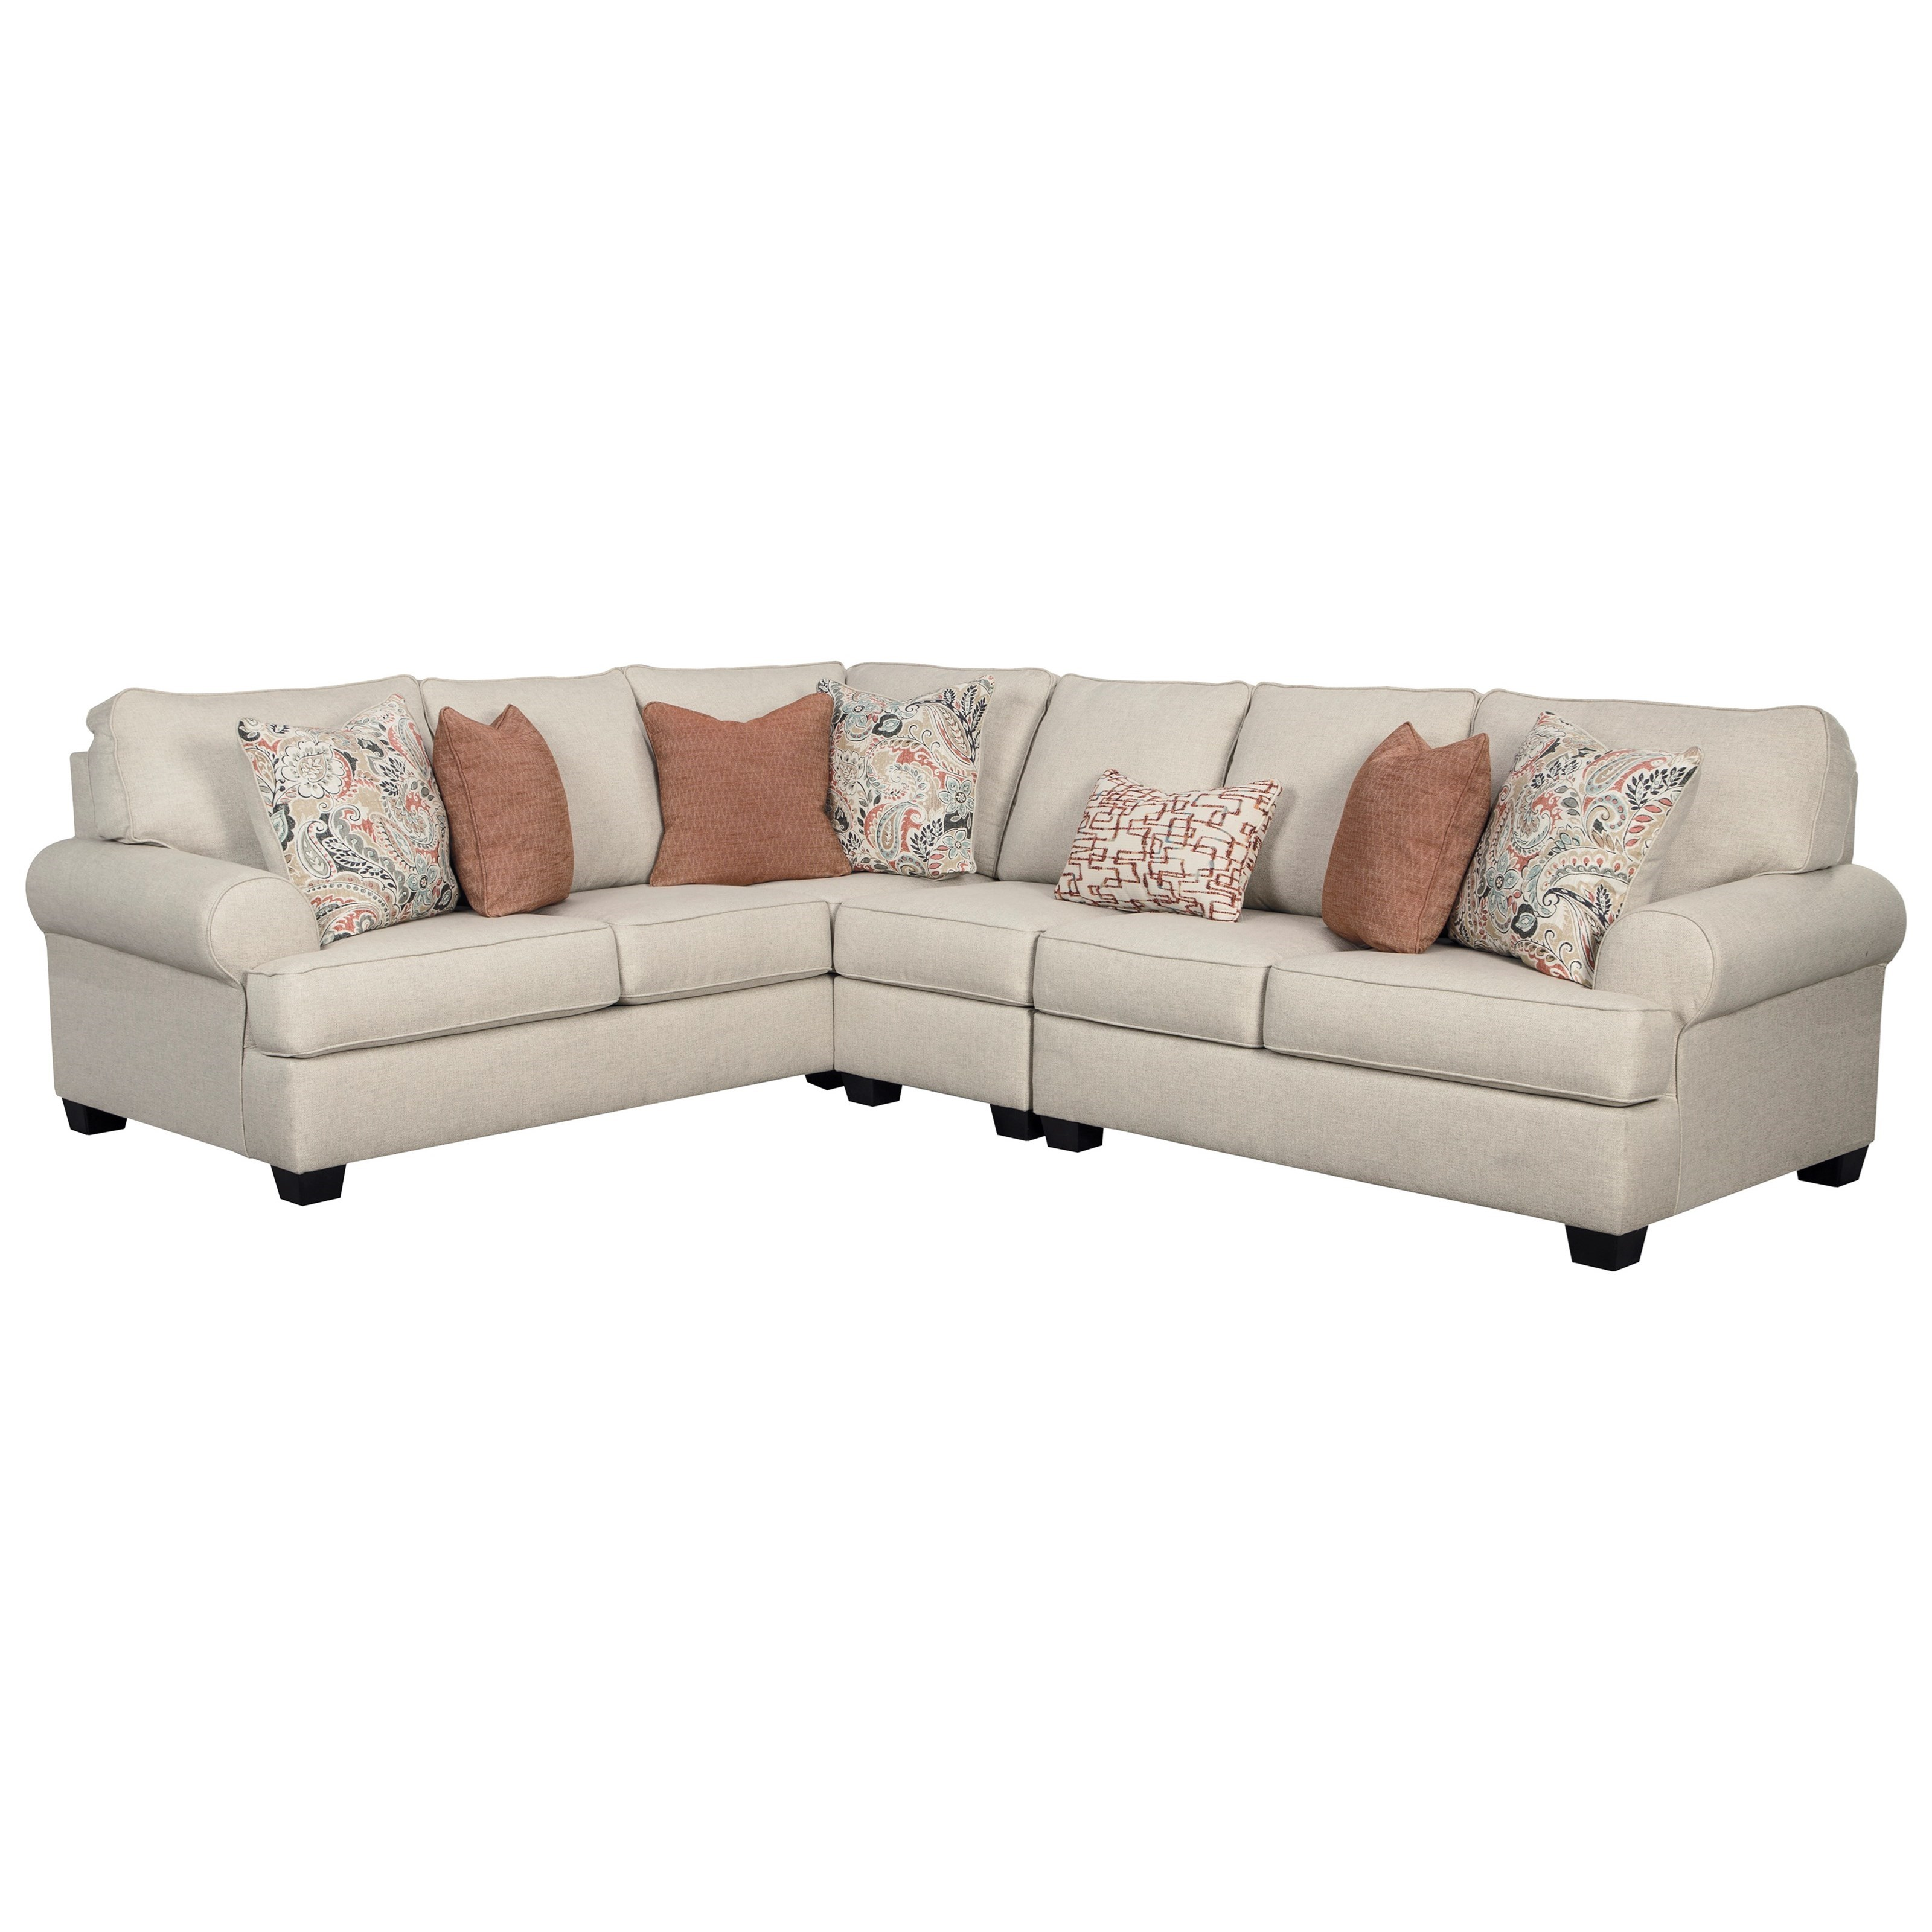 Amici 3-Piece Sectional by Ashley (Signature Design) at Johnny Janosik